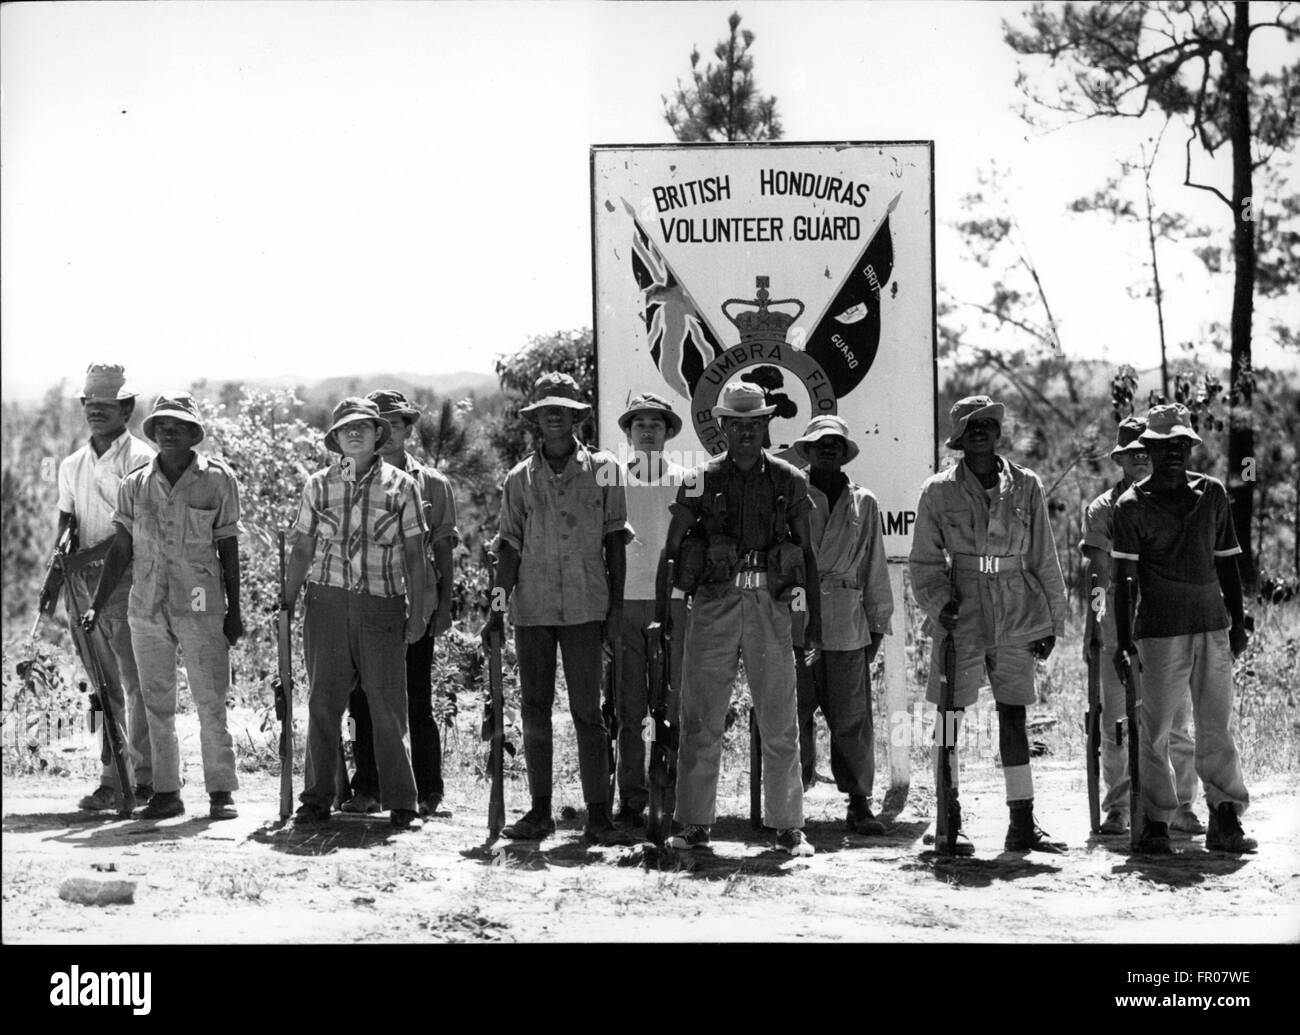 1962 - On parade - British Honduras Volunteer Guard, soon to be backed up with 4,000 British troops, aircraft and Stock Photo